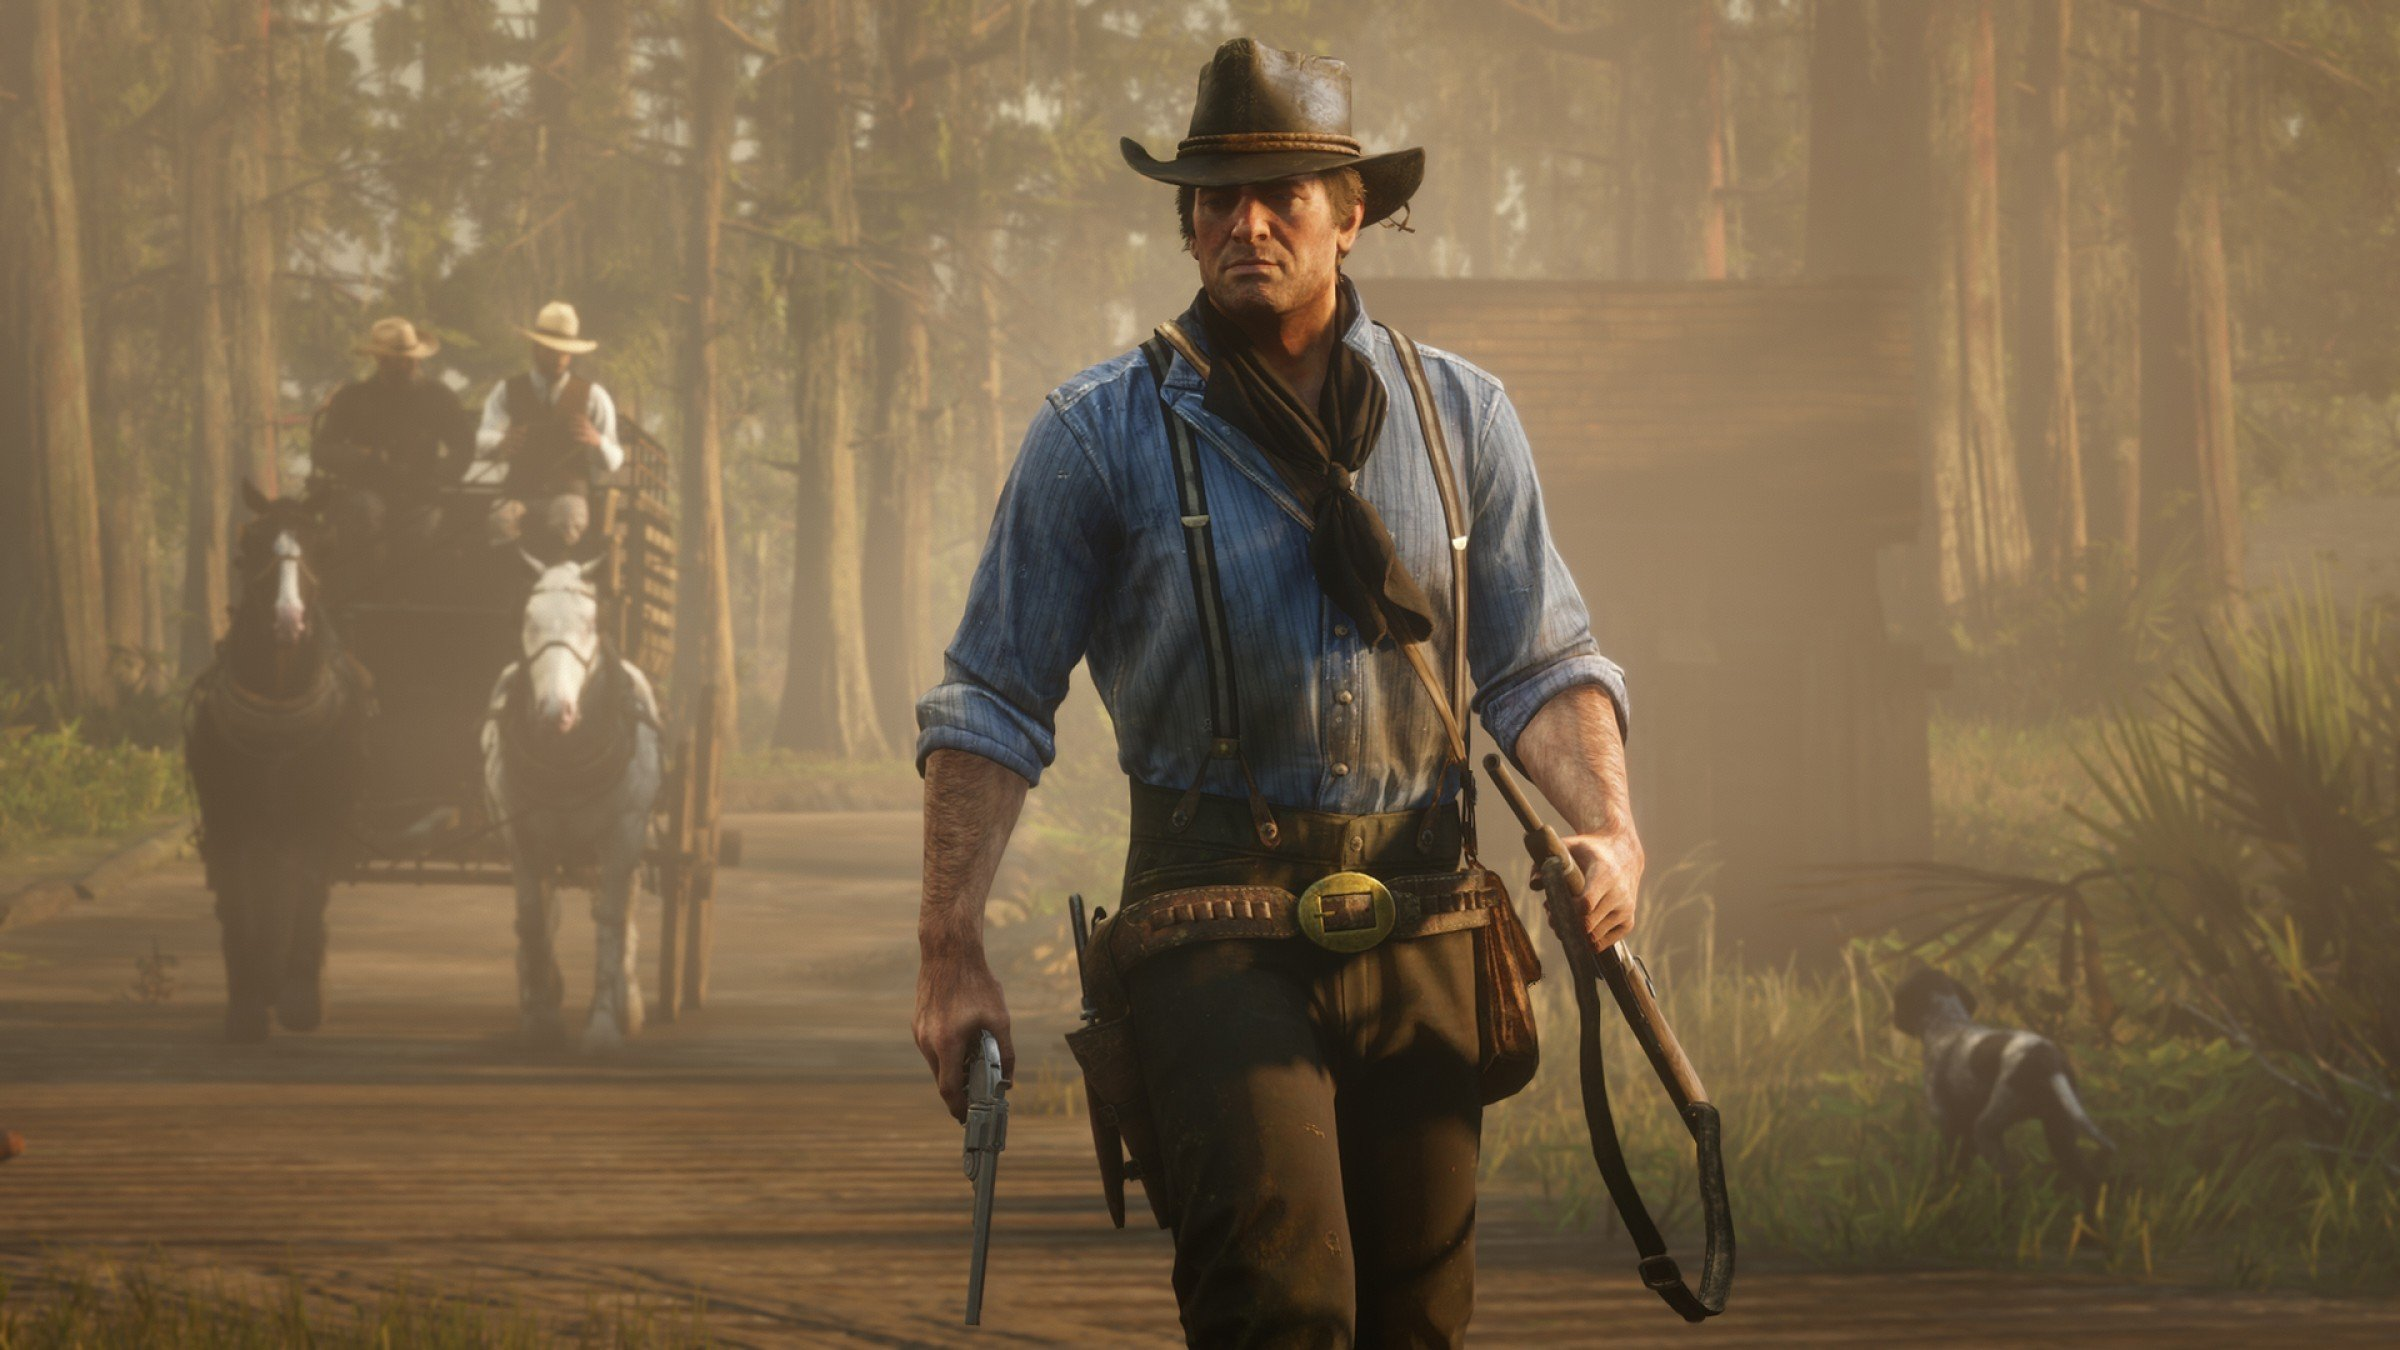 Has 'Red Dead Redemption 2' Proven Video Games' Superiority Over Cinema?